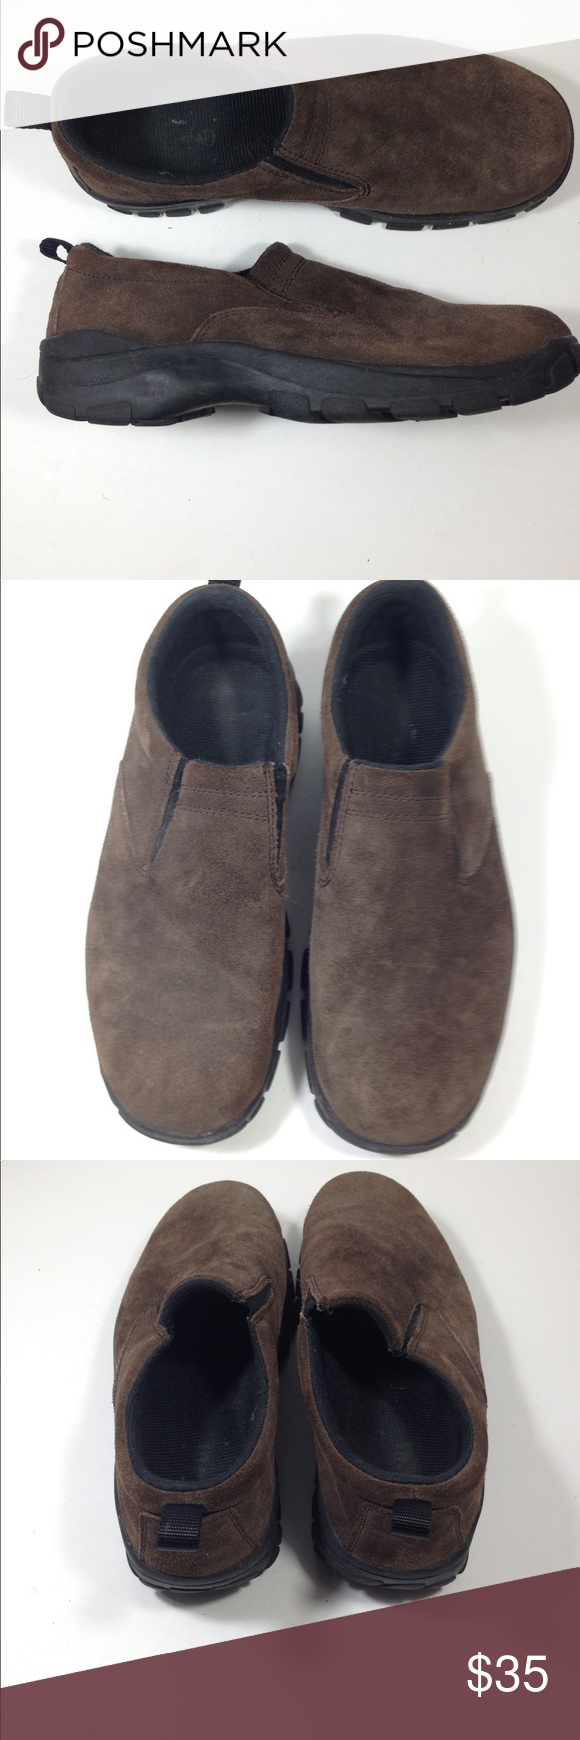 0495adcad RedHead slip ons Suede Dark brown - EX condition RedHead Men s slip ons -  Size 8.5 Suede Dark brown - EX condition Shoe 556 red head Shoes